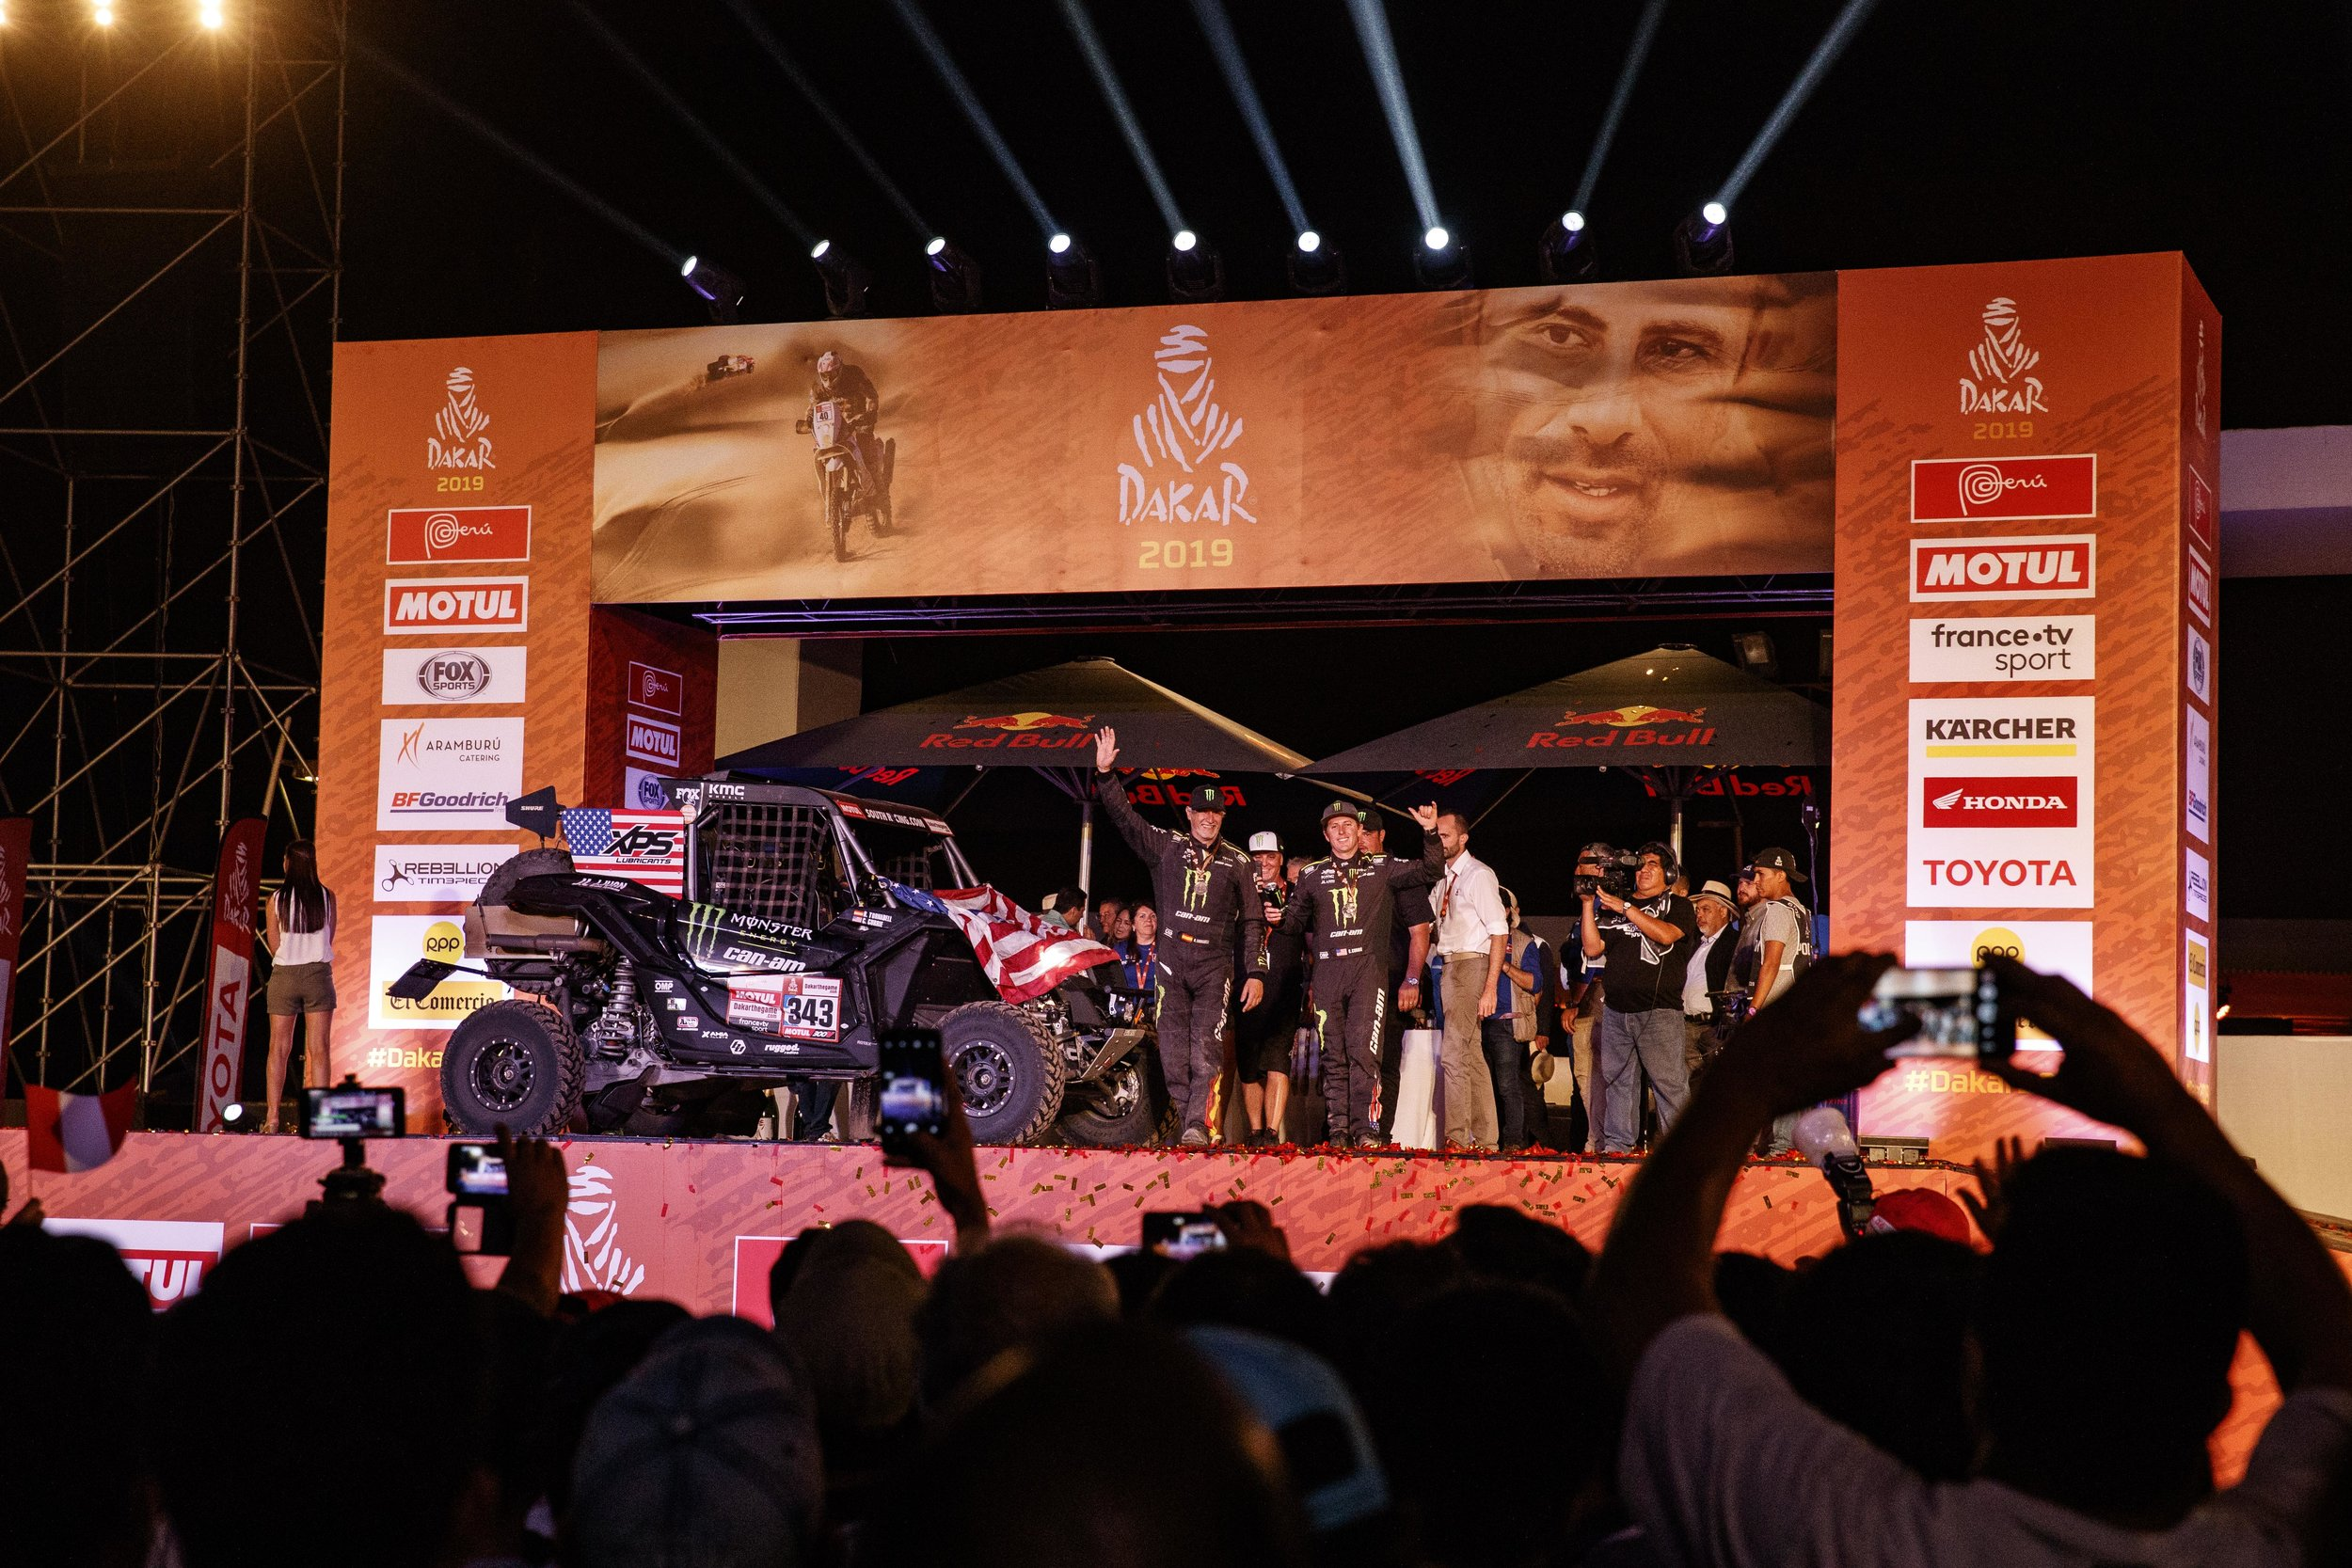 Finally atop the podium and the Dakar rally is complete.